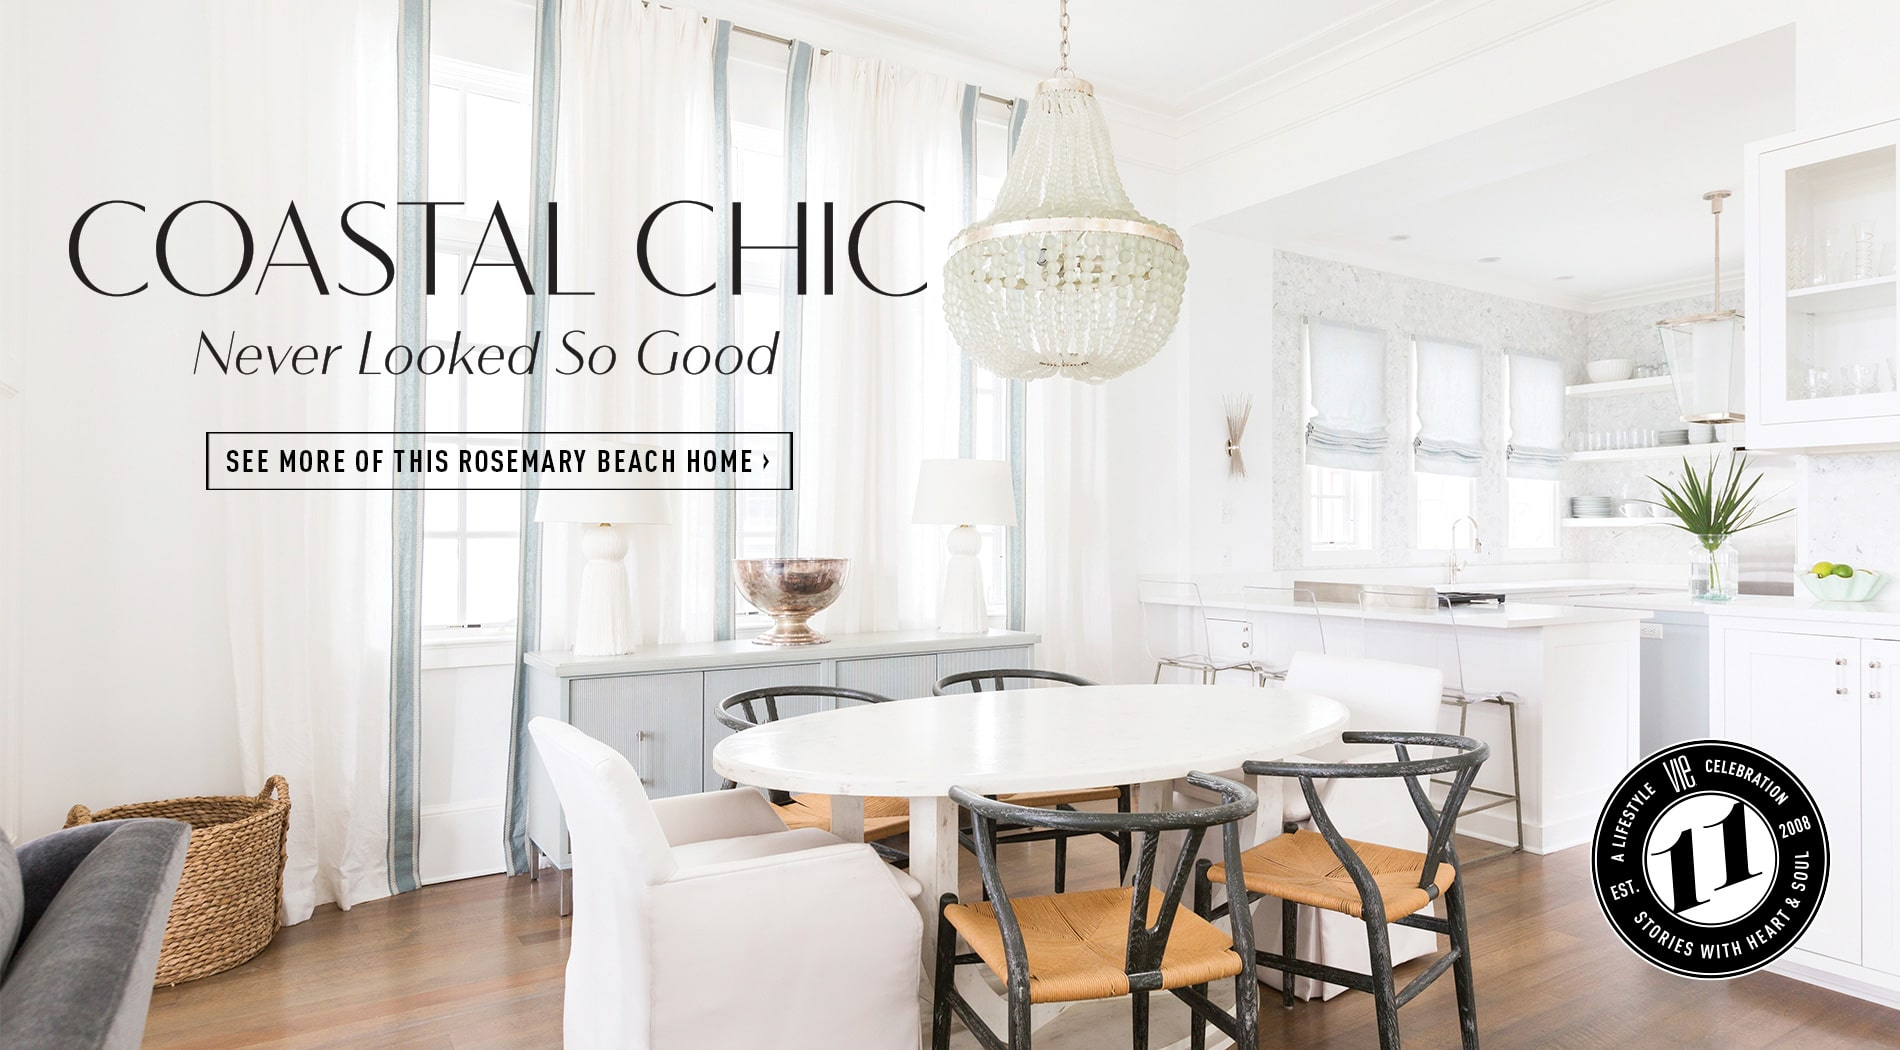 VIE Magazine - August 2019 - The Architecture and Design Issue - Rosemary Beach Florida Home